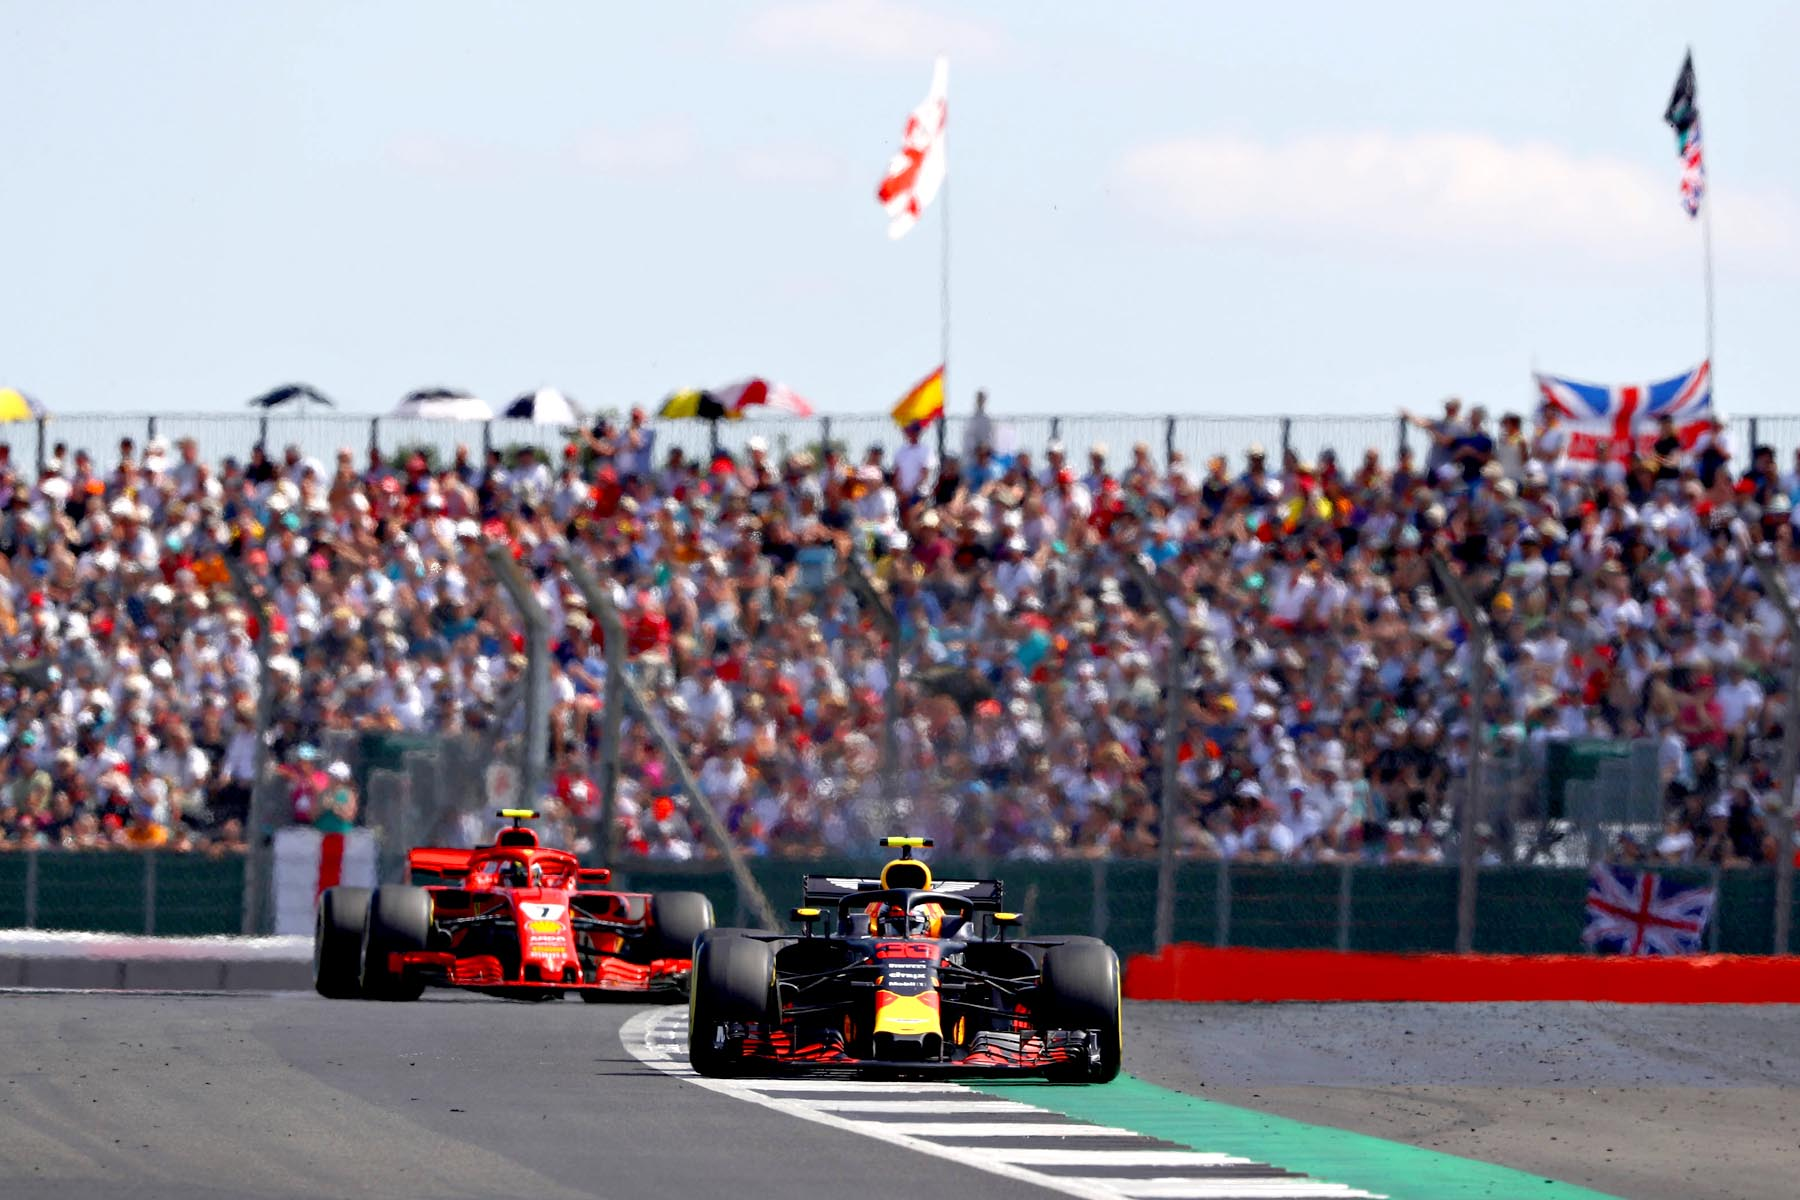 Max Verstappen and Kimi Raikkonen on track at the 2018 British Grand Prix.